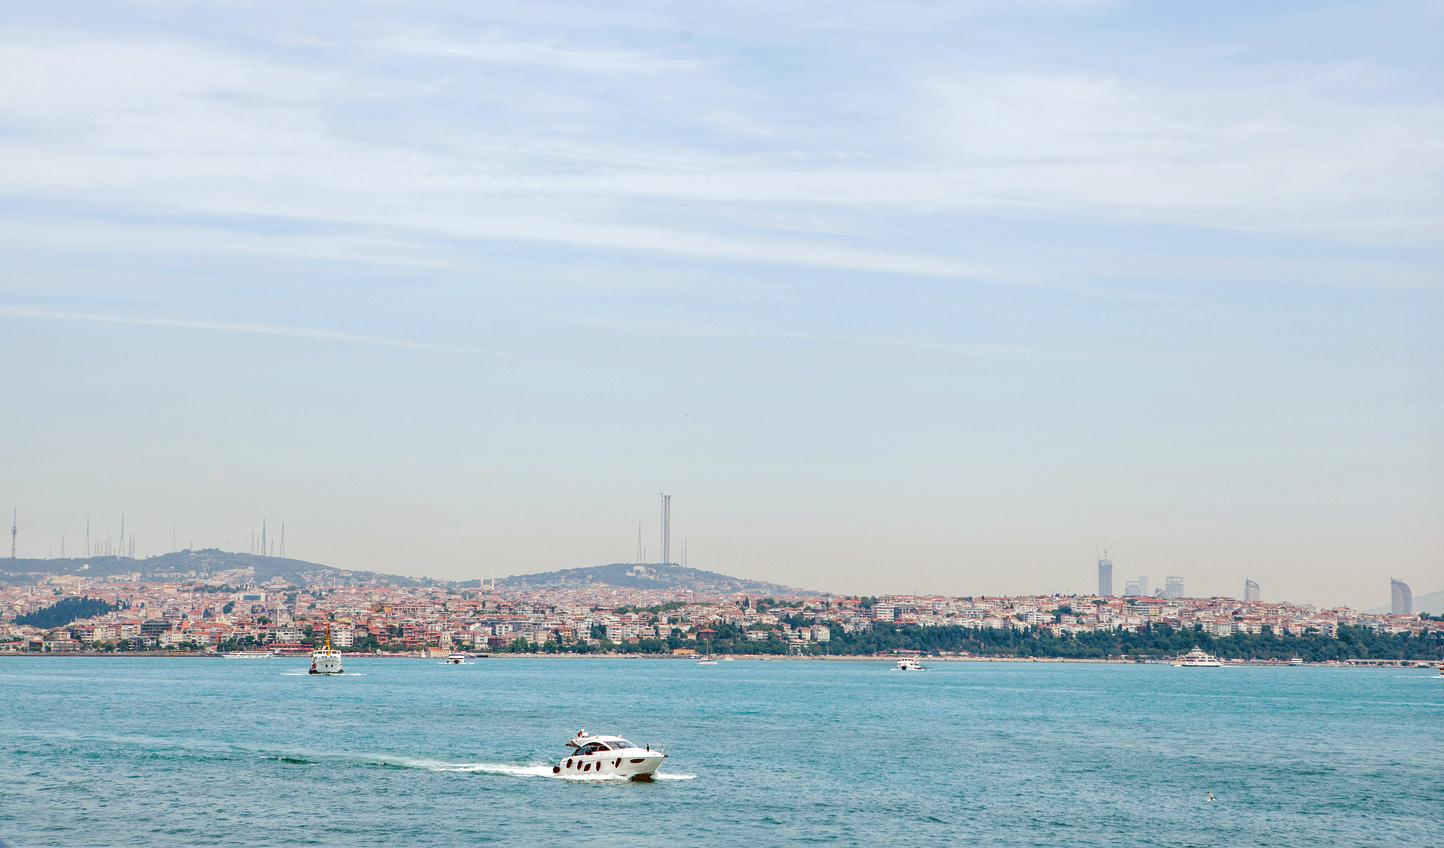 Cruise along the glimmering waters of the Bosphorus